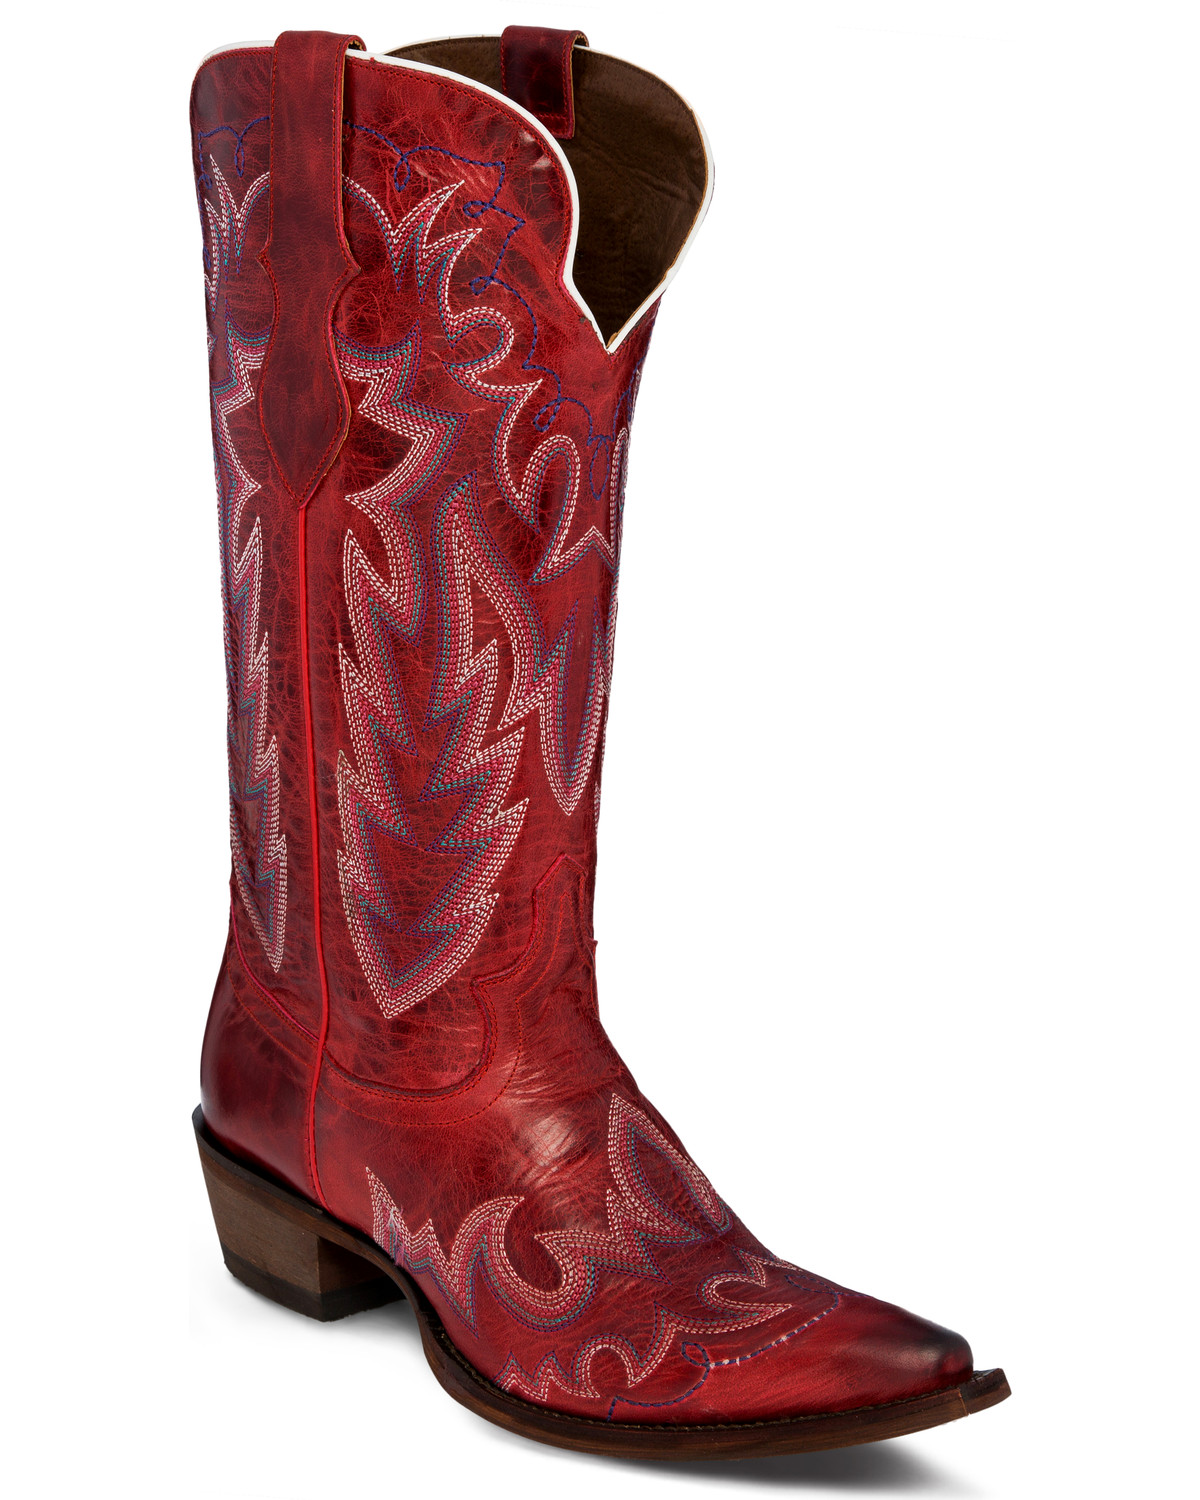 Red Womens Cowboy Boots